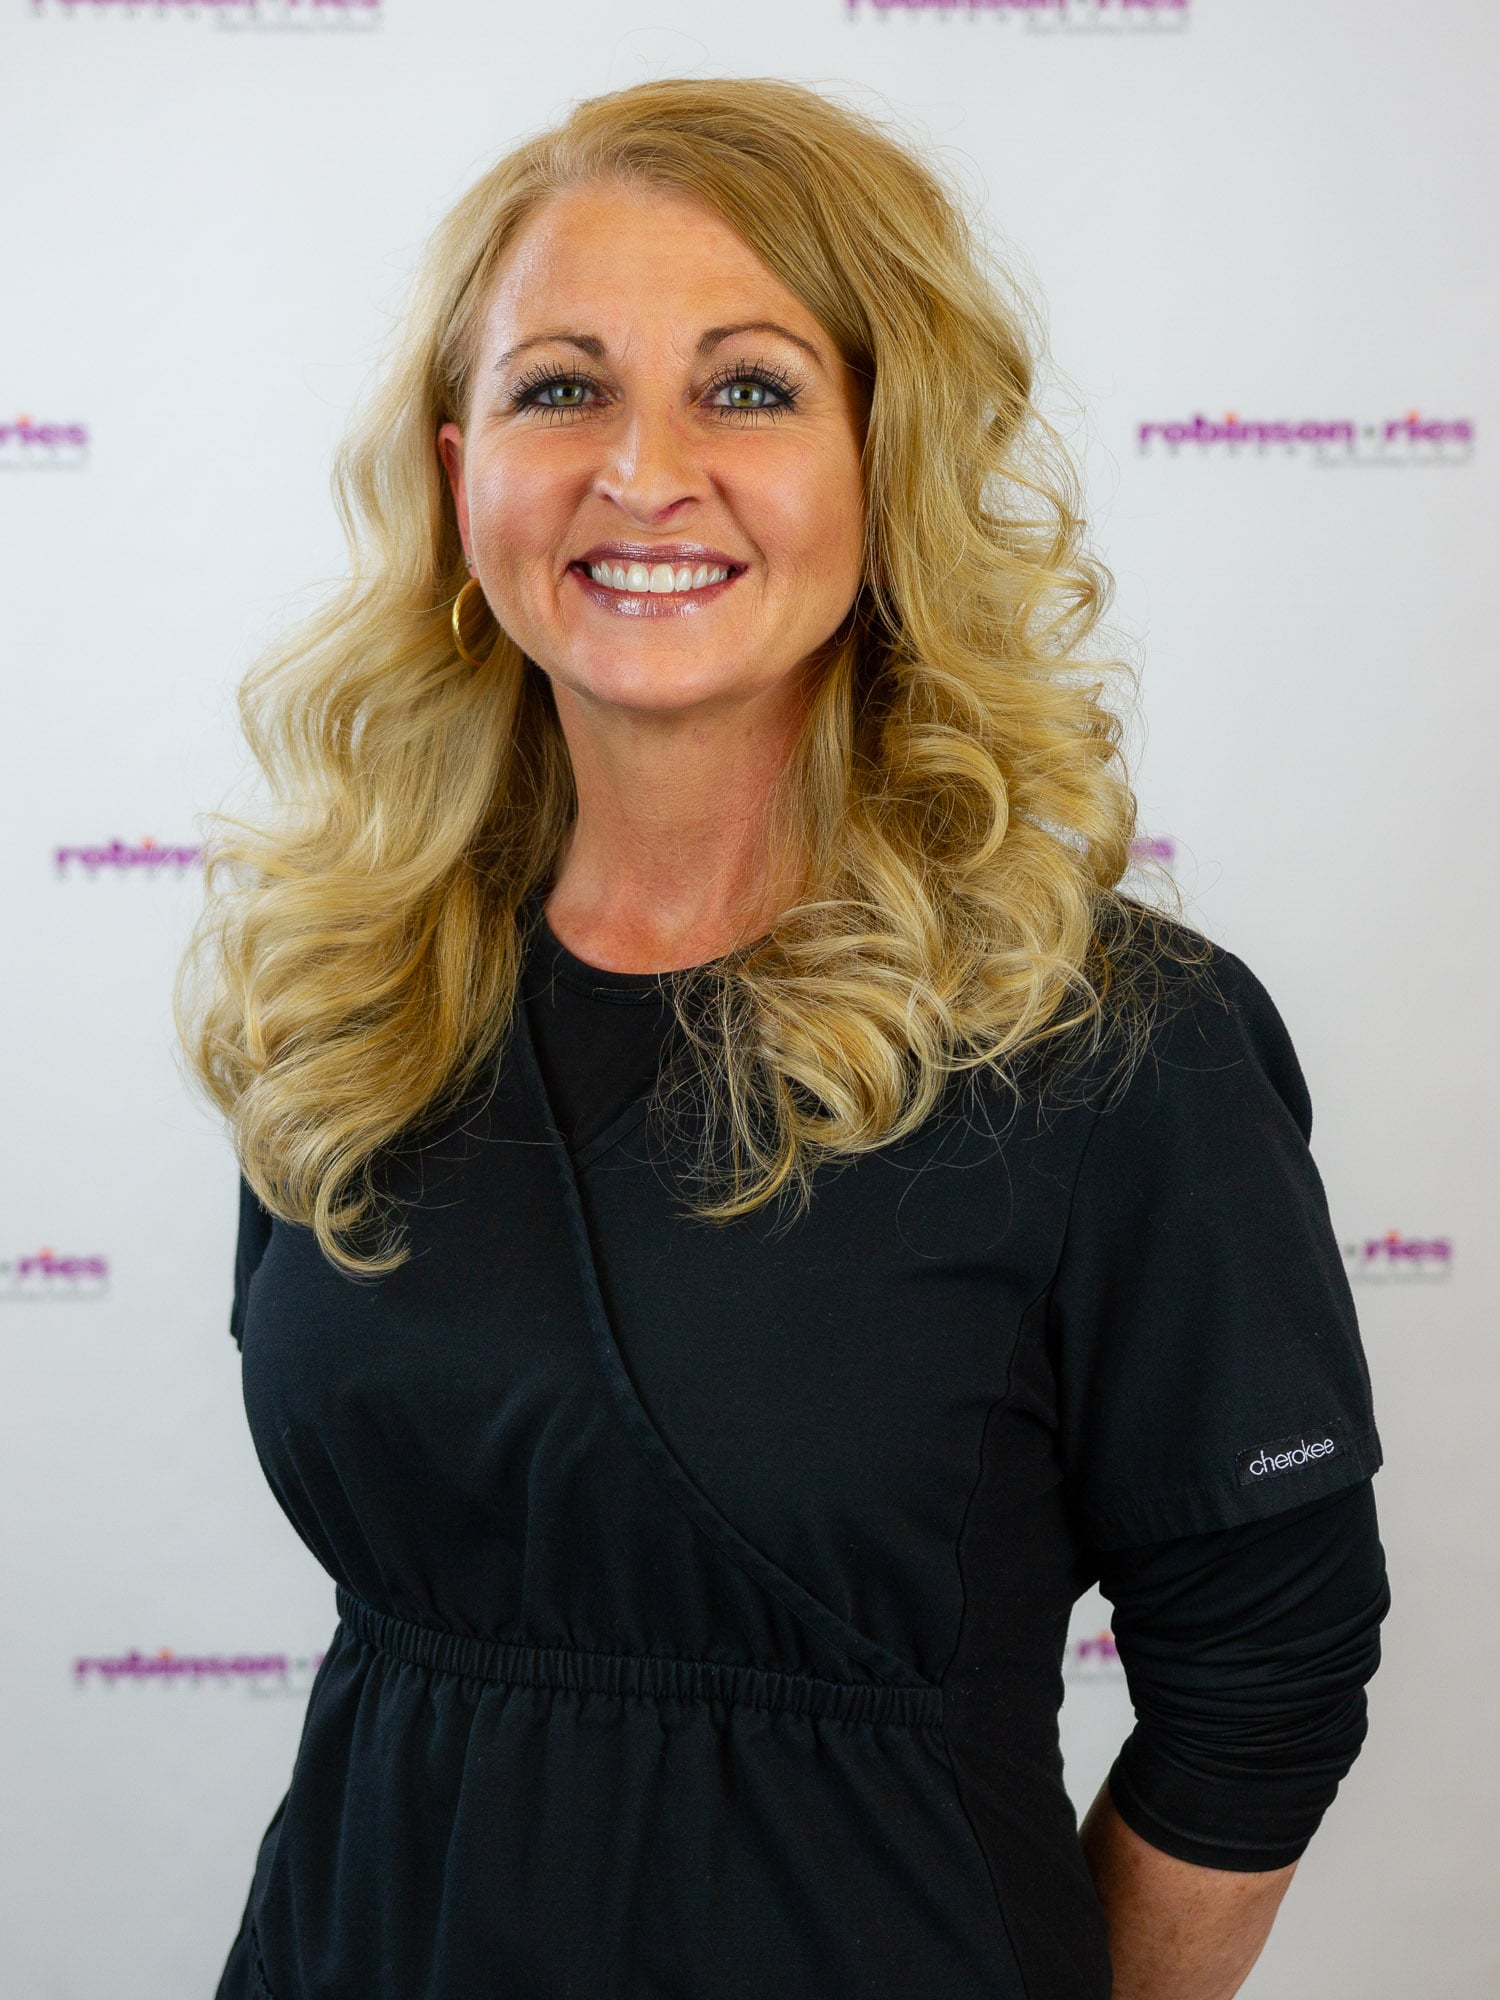 Renee is an Orthodontic Assistant at Robinson + Ries Orthodontics.